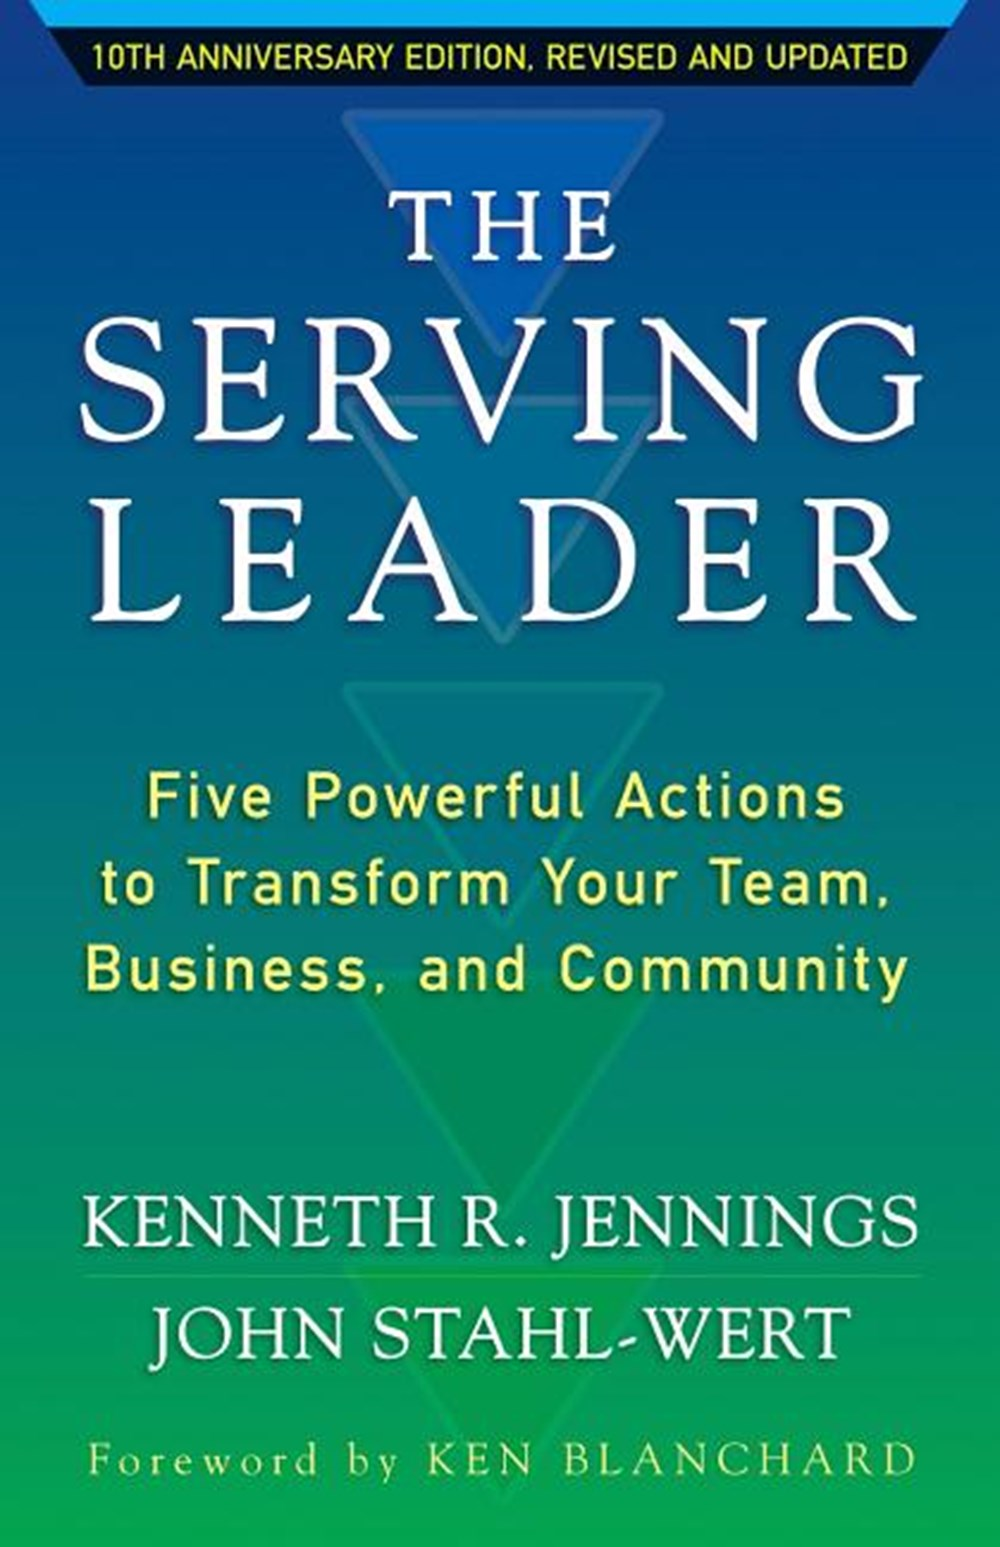 Serving Leader Five Powerful Actions to Transform Your Team, Business, and Community